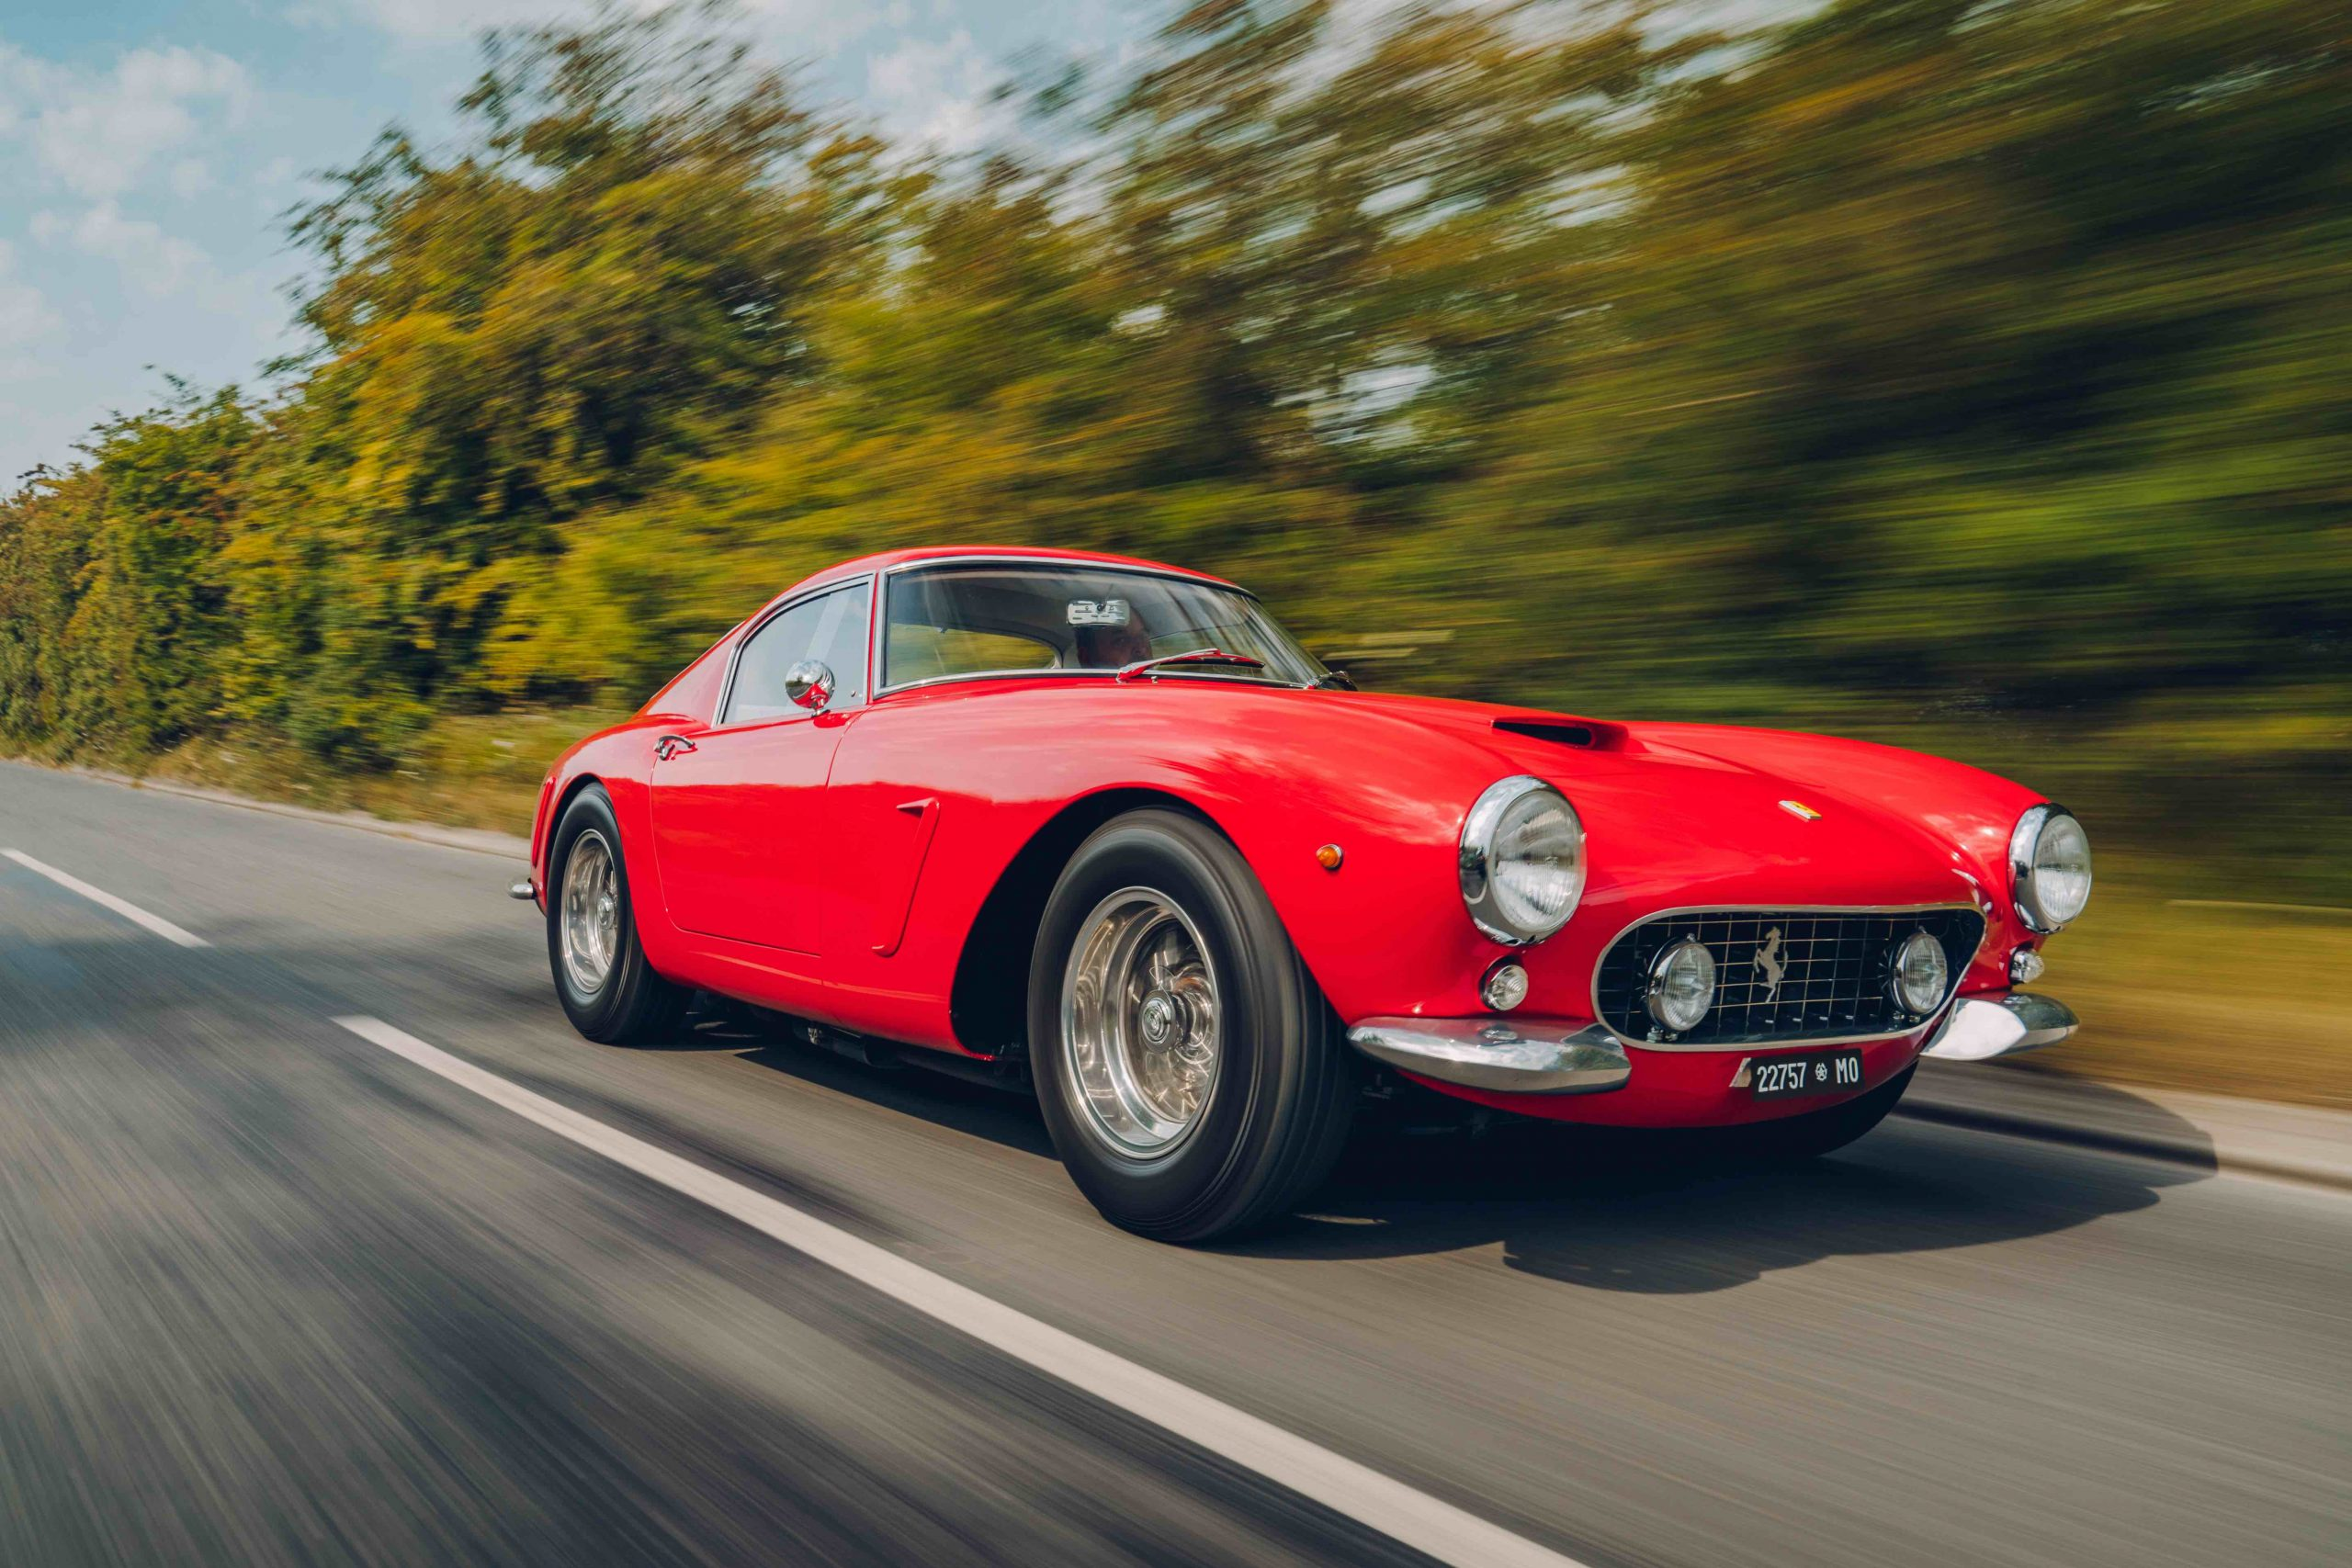 What do you do when your Ferrari 250 GT SWB is too valuable to drive? Buy this recreation and enjoy the drive of a lifetime